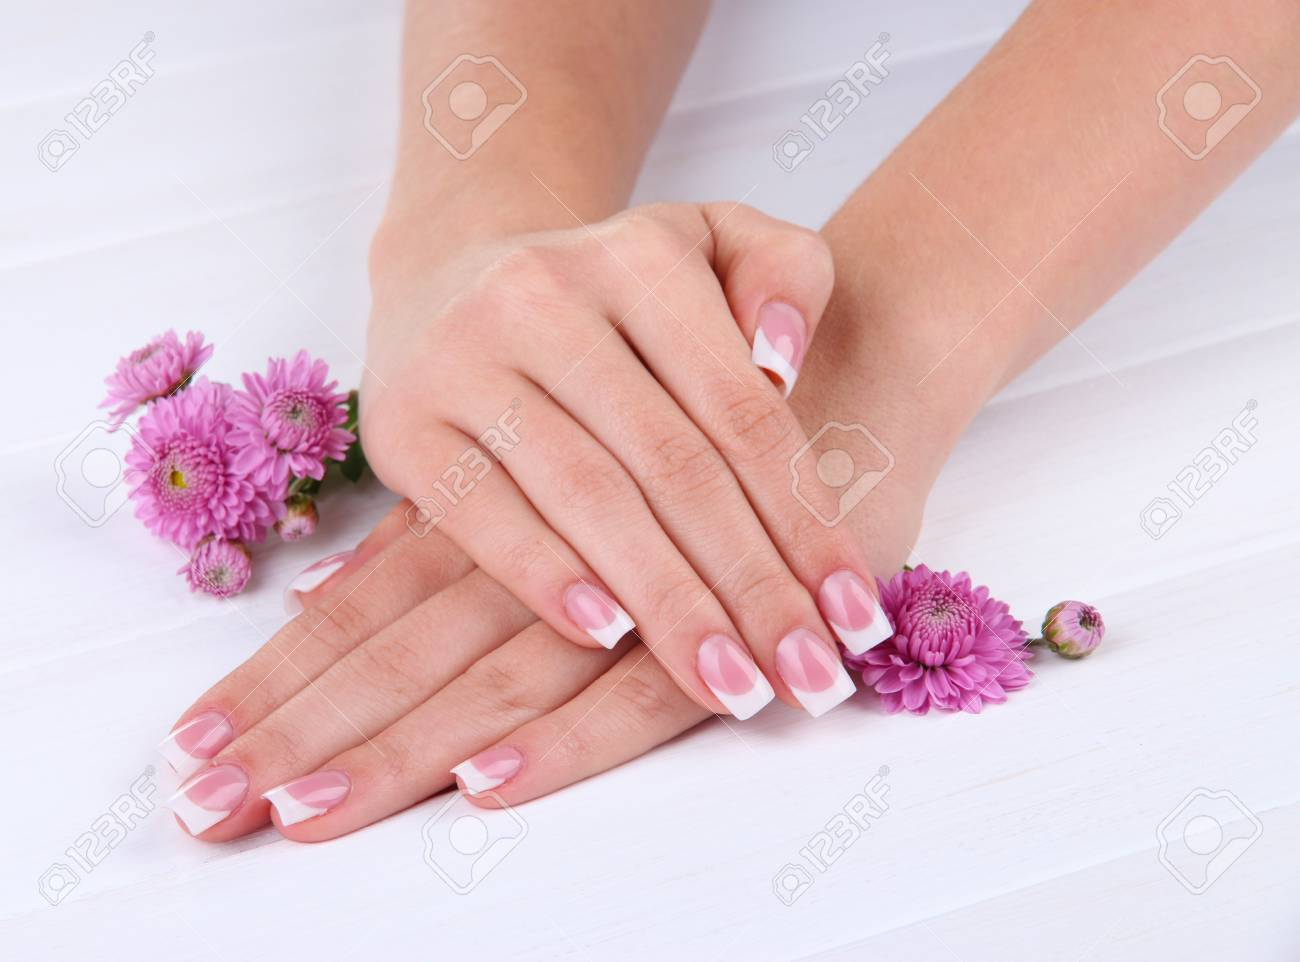 Woman hands with french manicure and flowers on white wooden background Stock Photo - 16895190